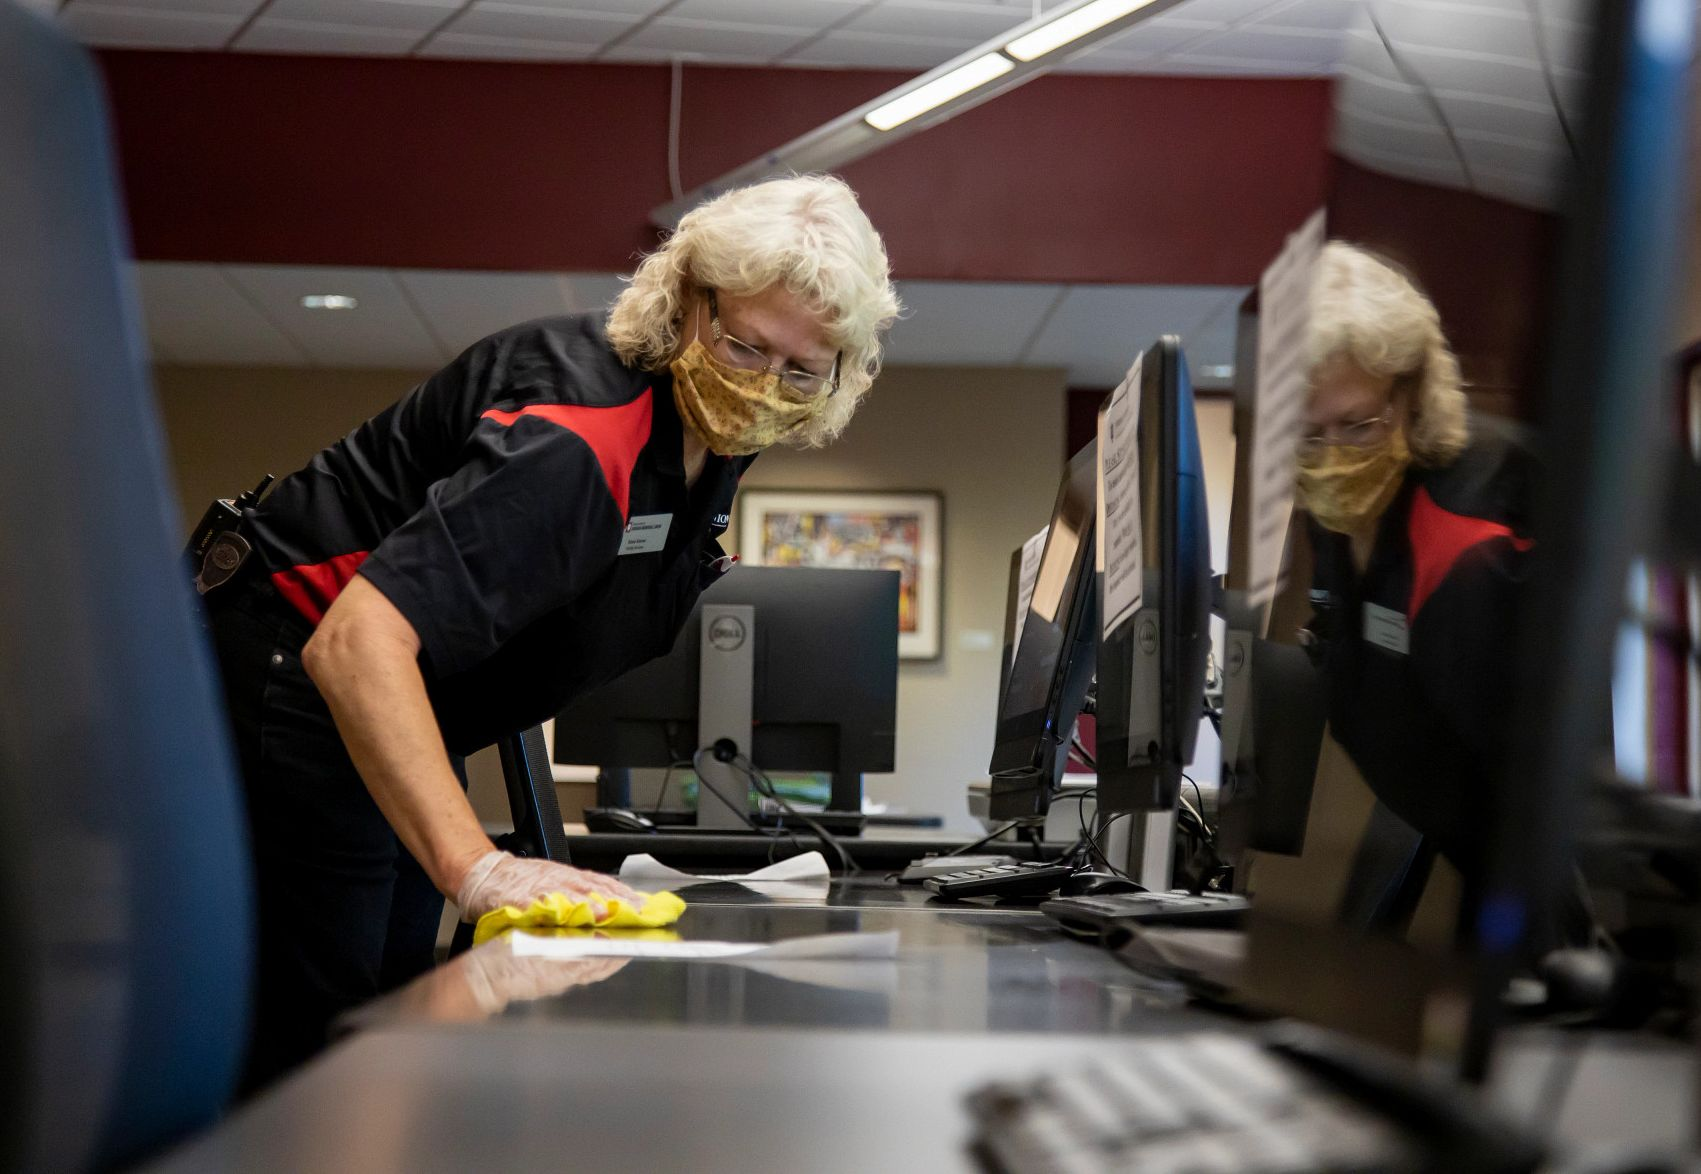 A woman wearing a mask cleans a computer lab table